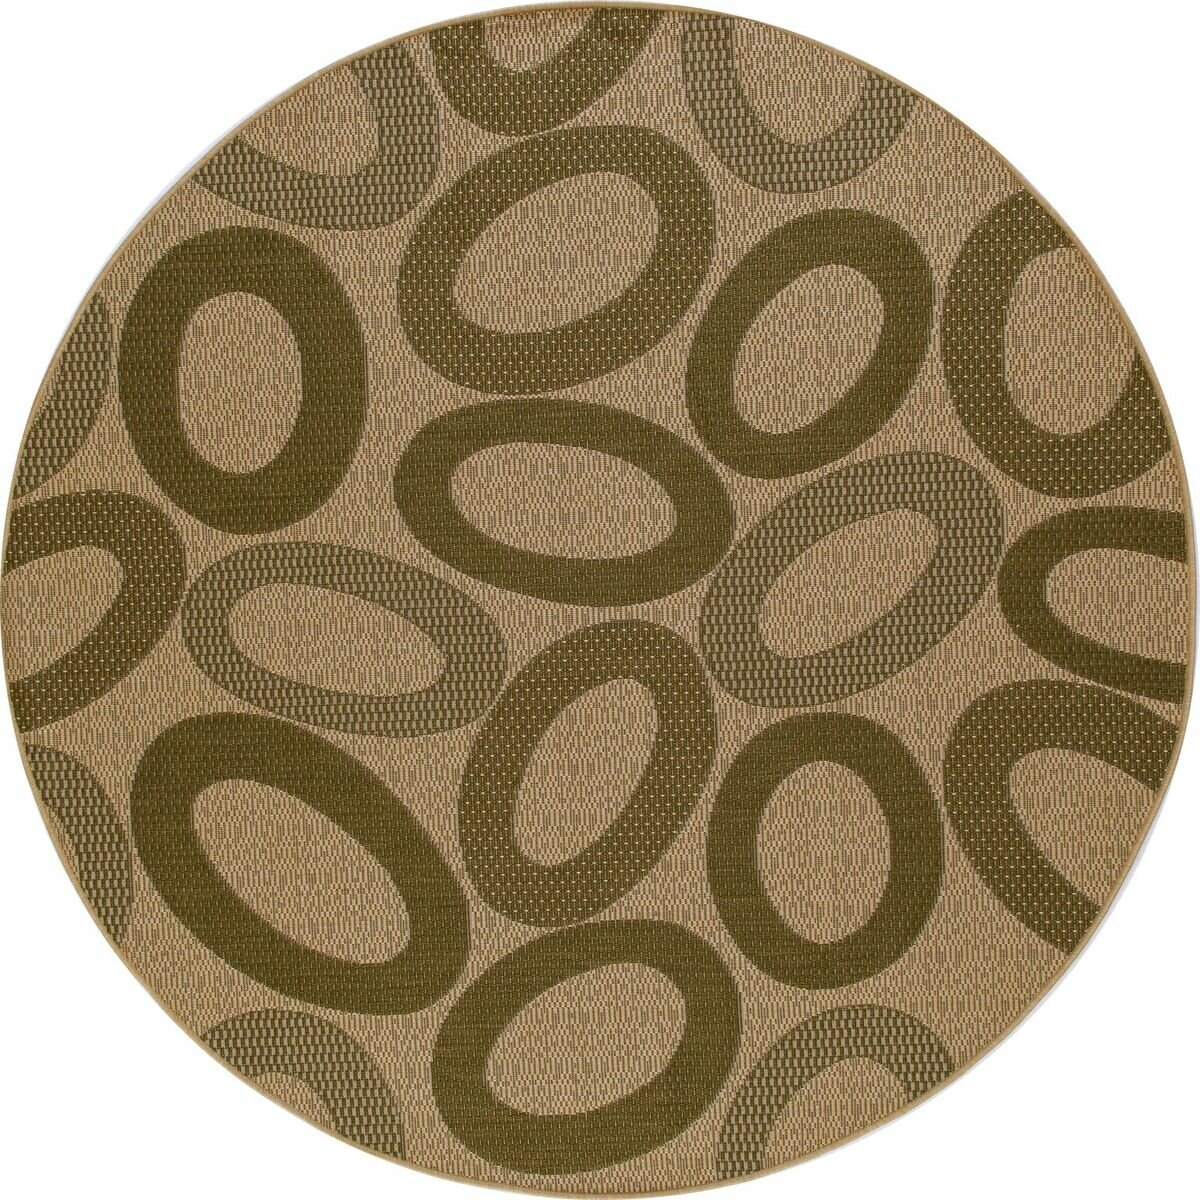 Art carpet plymouth green cream indoor outdoor area rug for Green and cream rugs